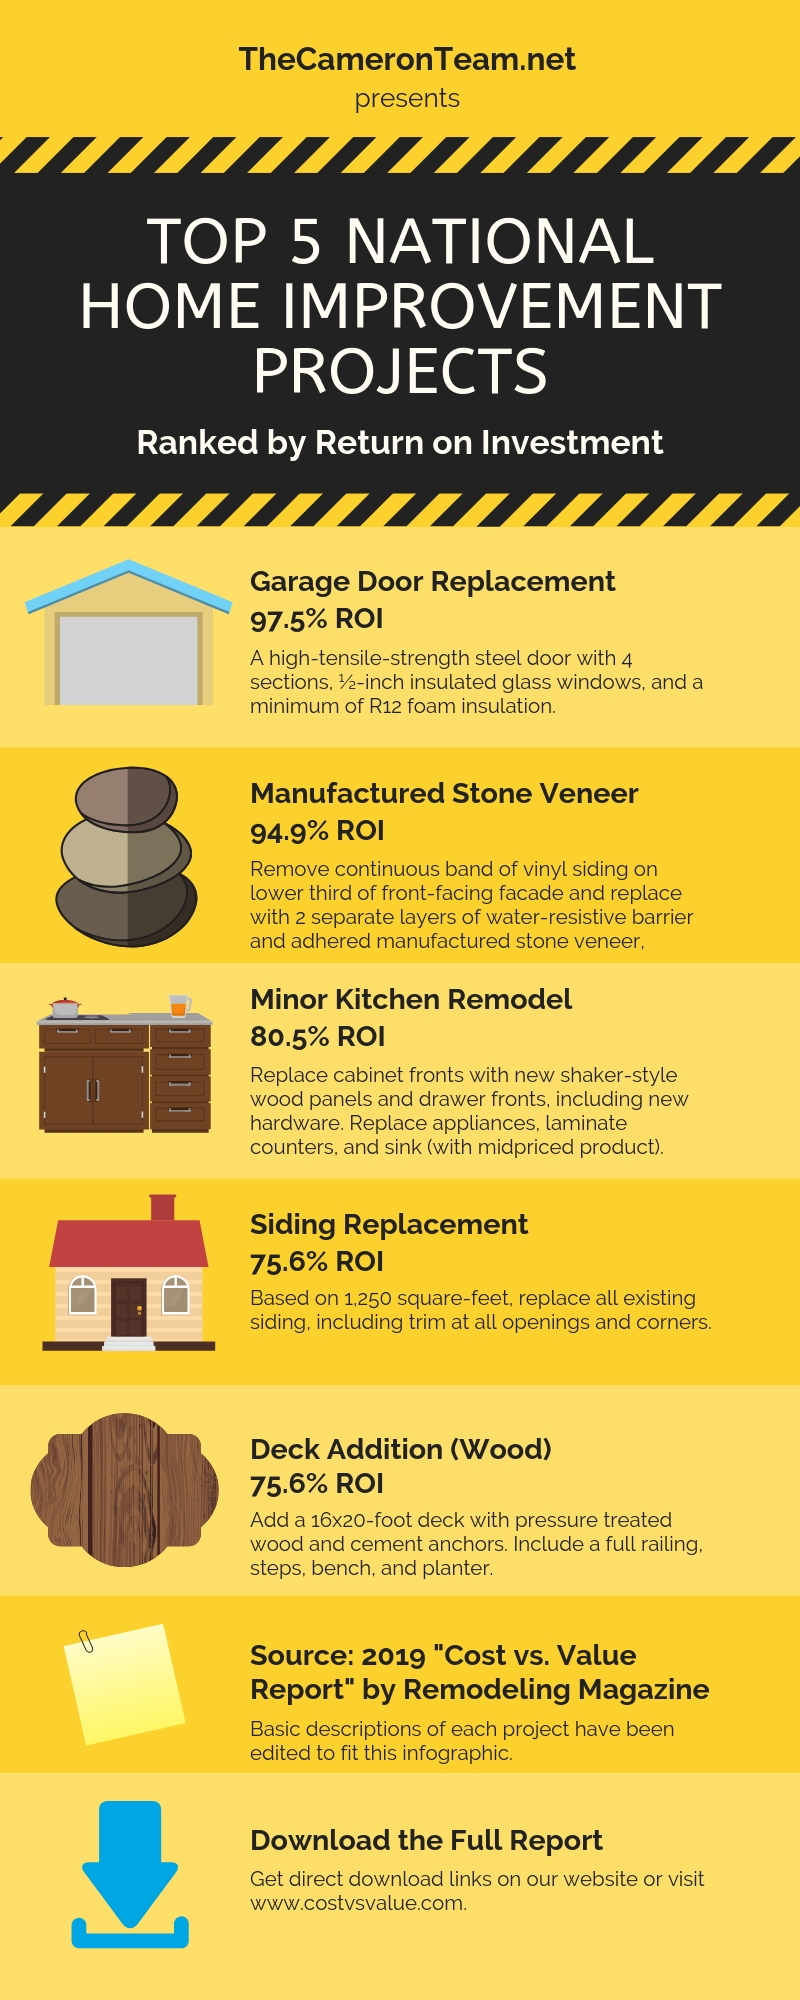 Top 5 National Home Improvement Projects